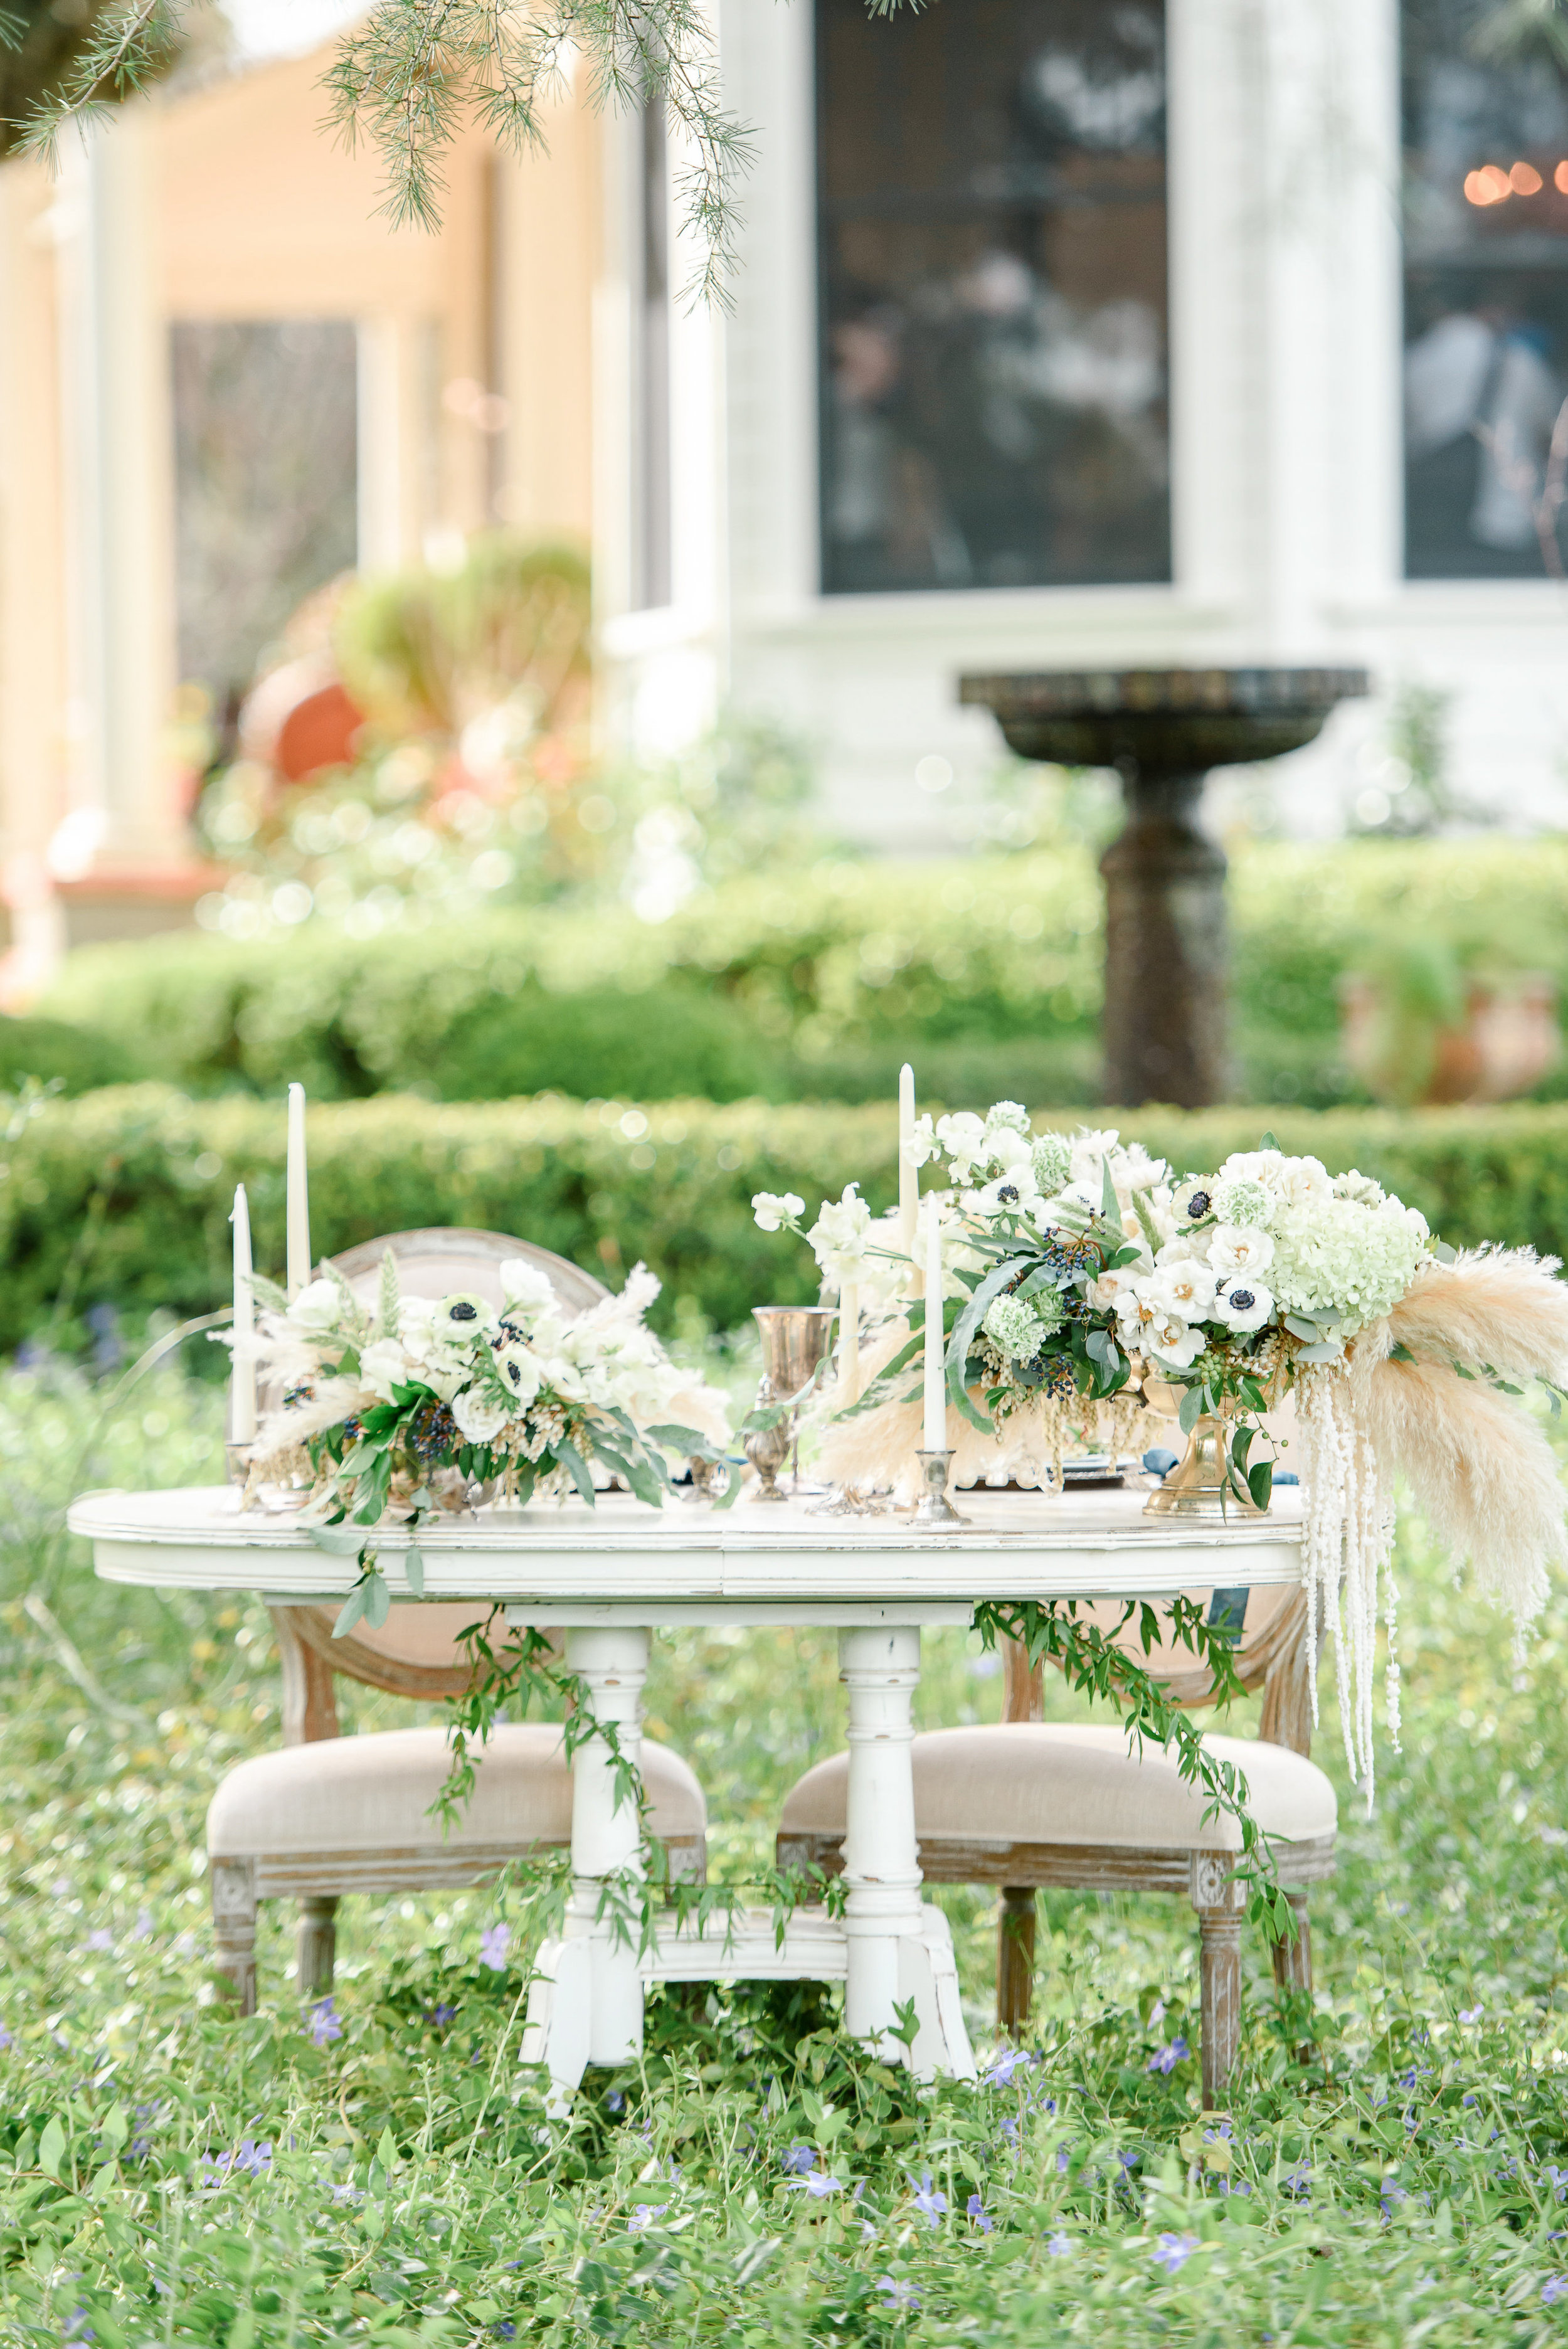 Spring Wedding Flowers | Sweetheart Table | Anemones | Pampas Grass